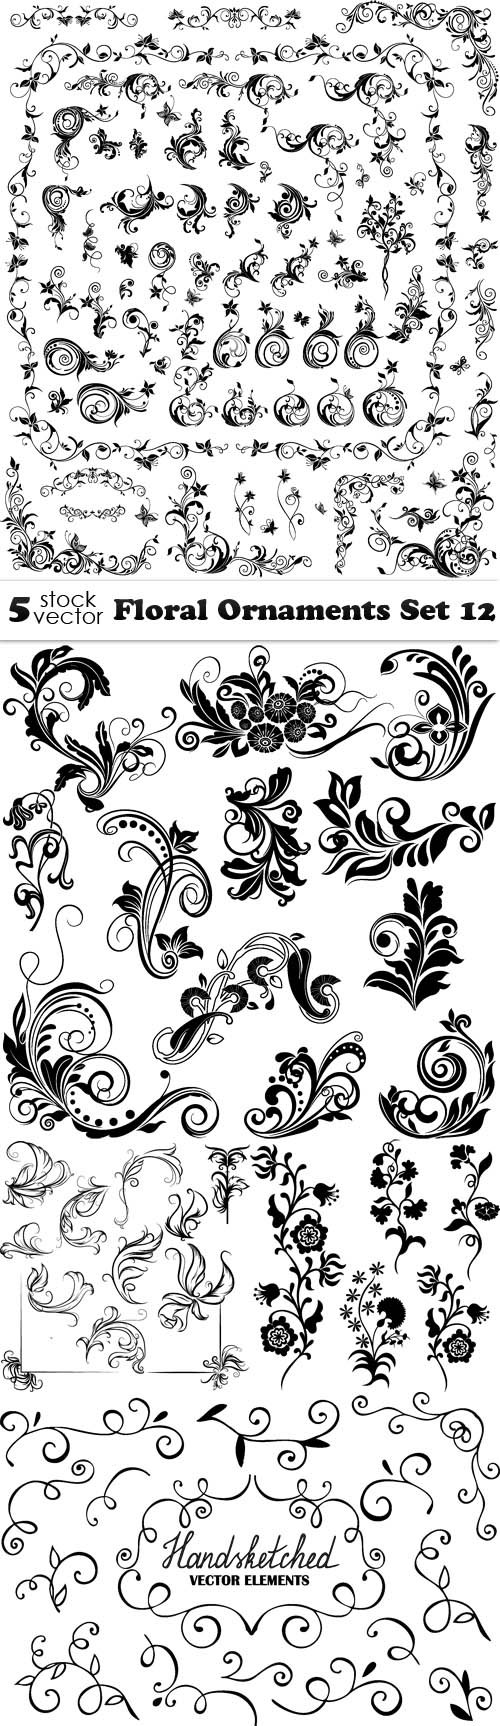 Vectors - Floral Ornaments Set 12